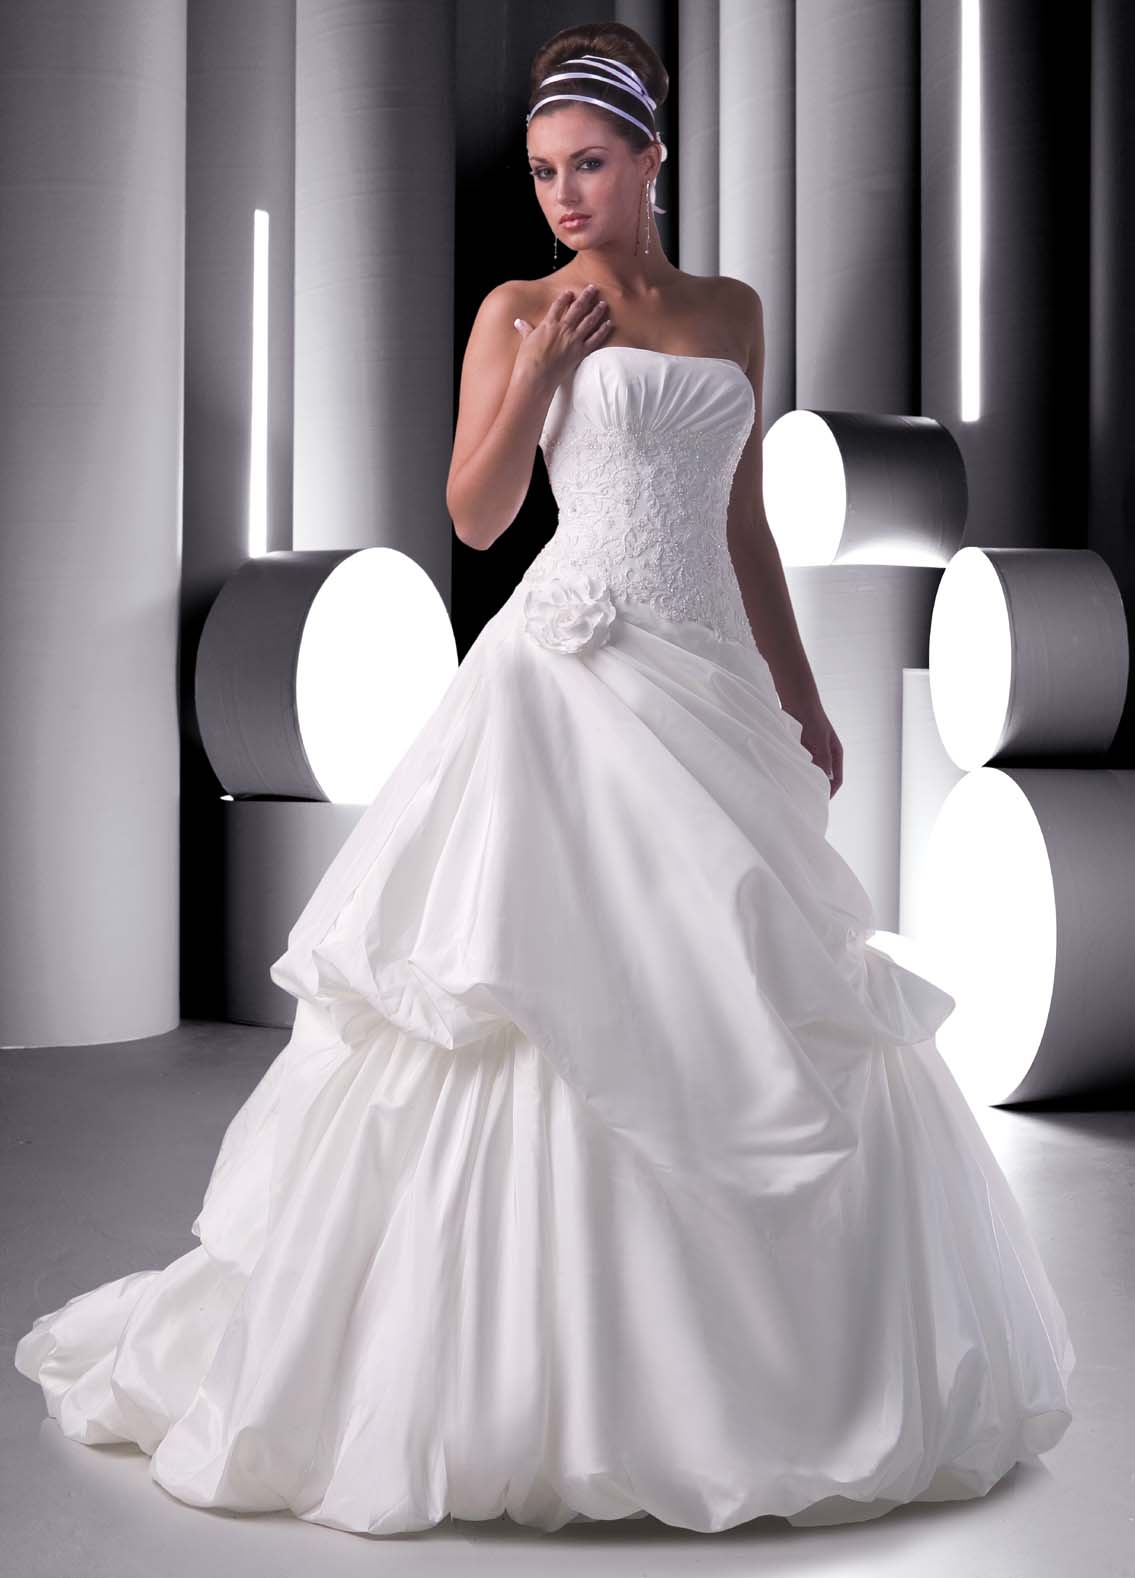 Wedding Gowns With Designs : Wedding gowns pick up styles